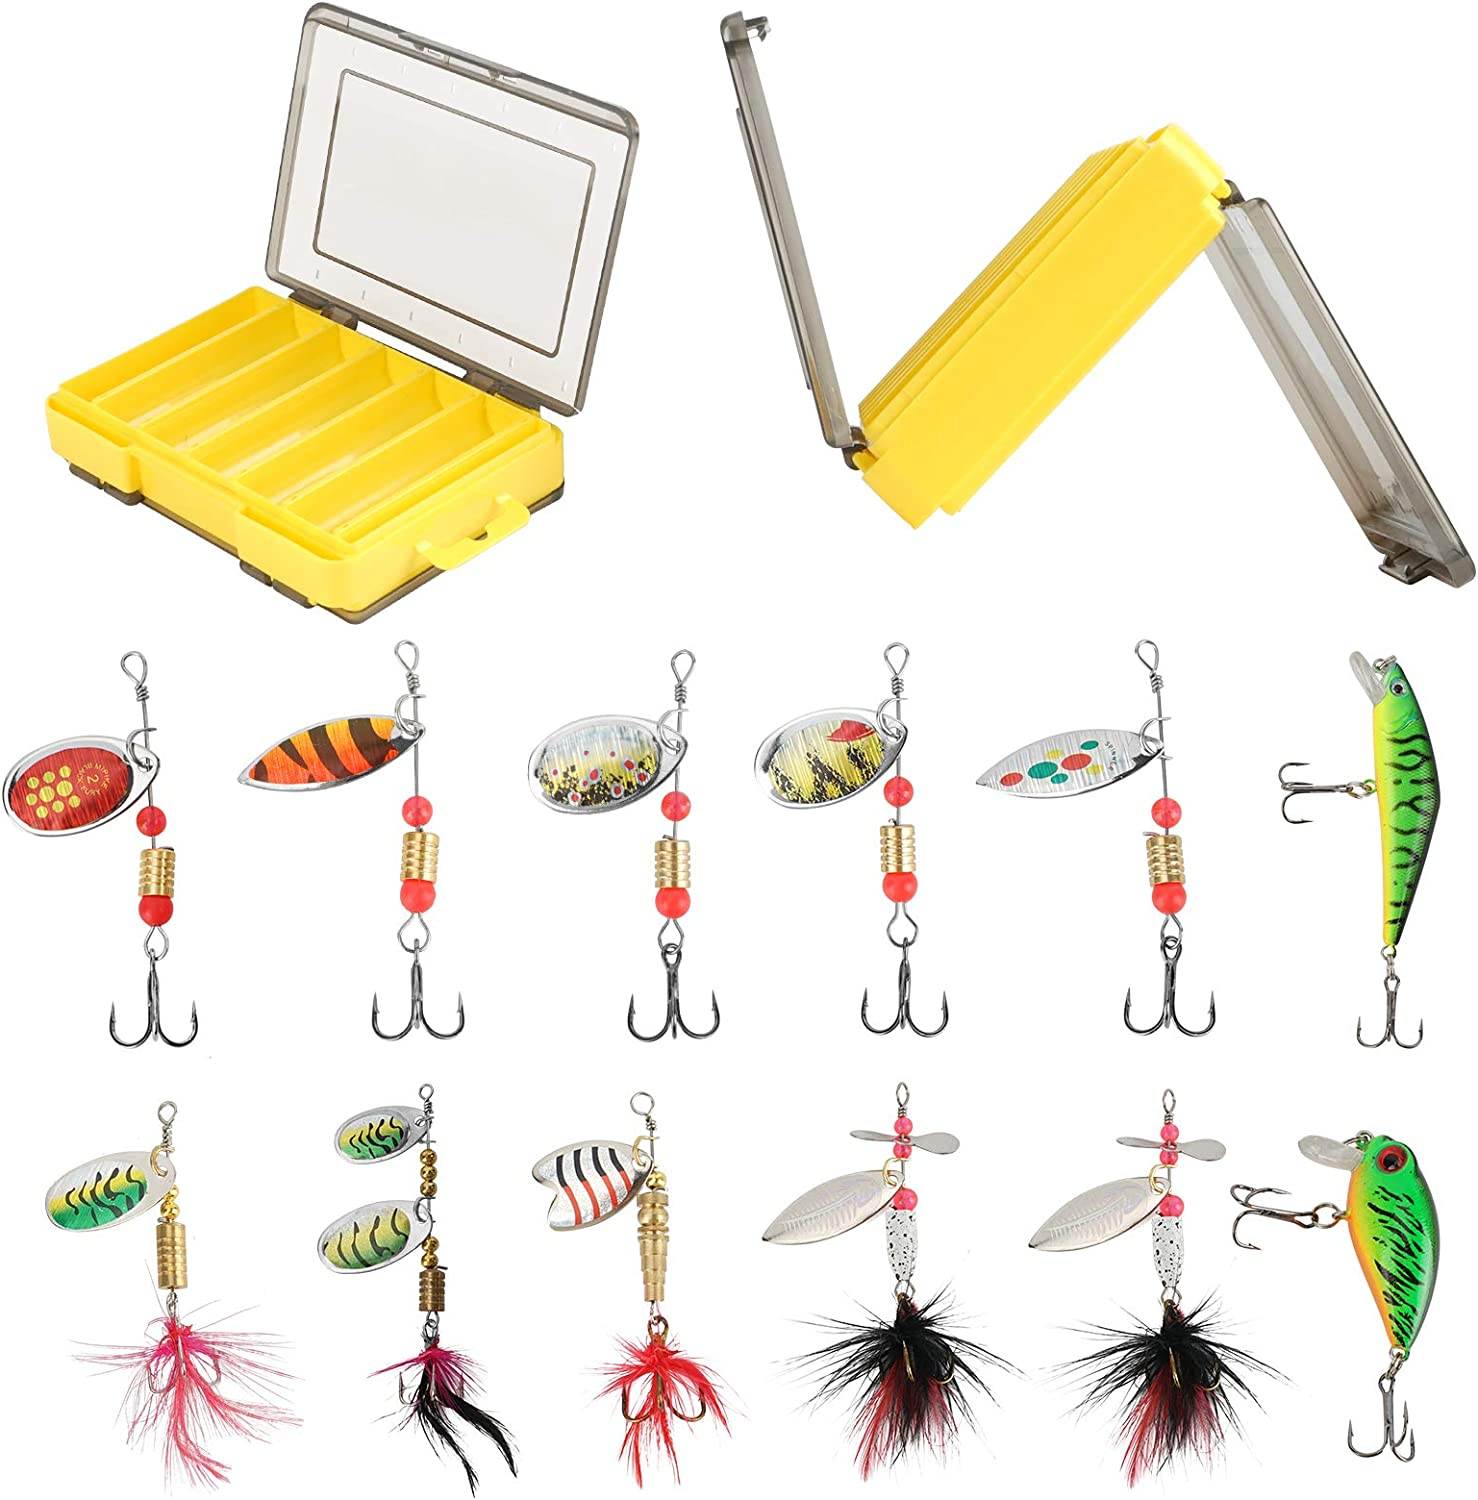 12PCS Fishing Lures Spinner Baits Super Special SALE held Las Vegas Mall Bass Salmon for Walleye Trout